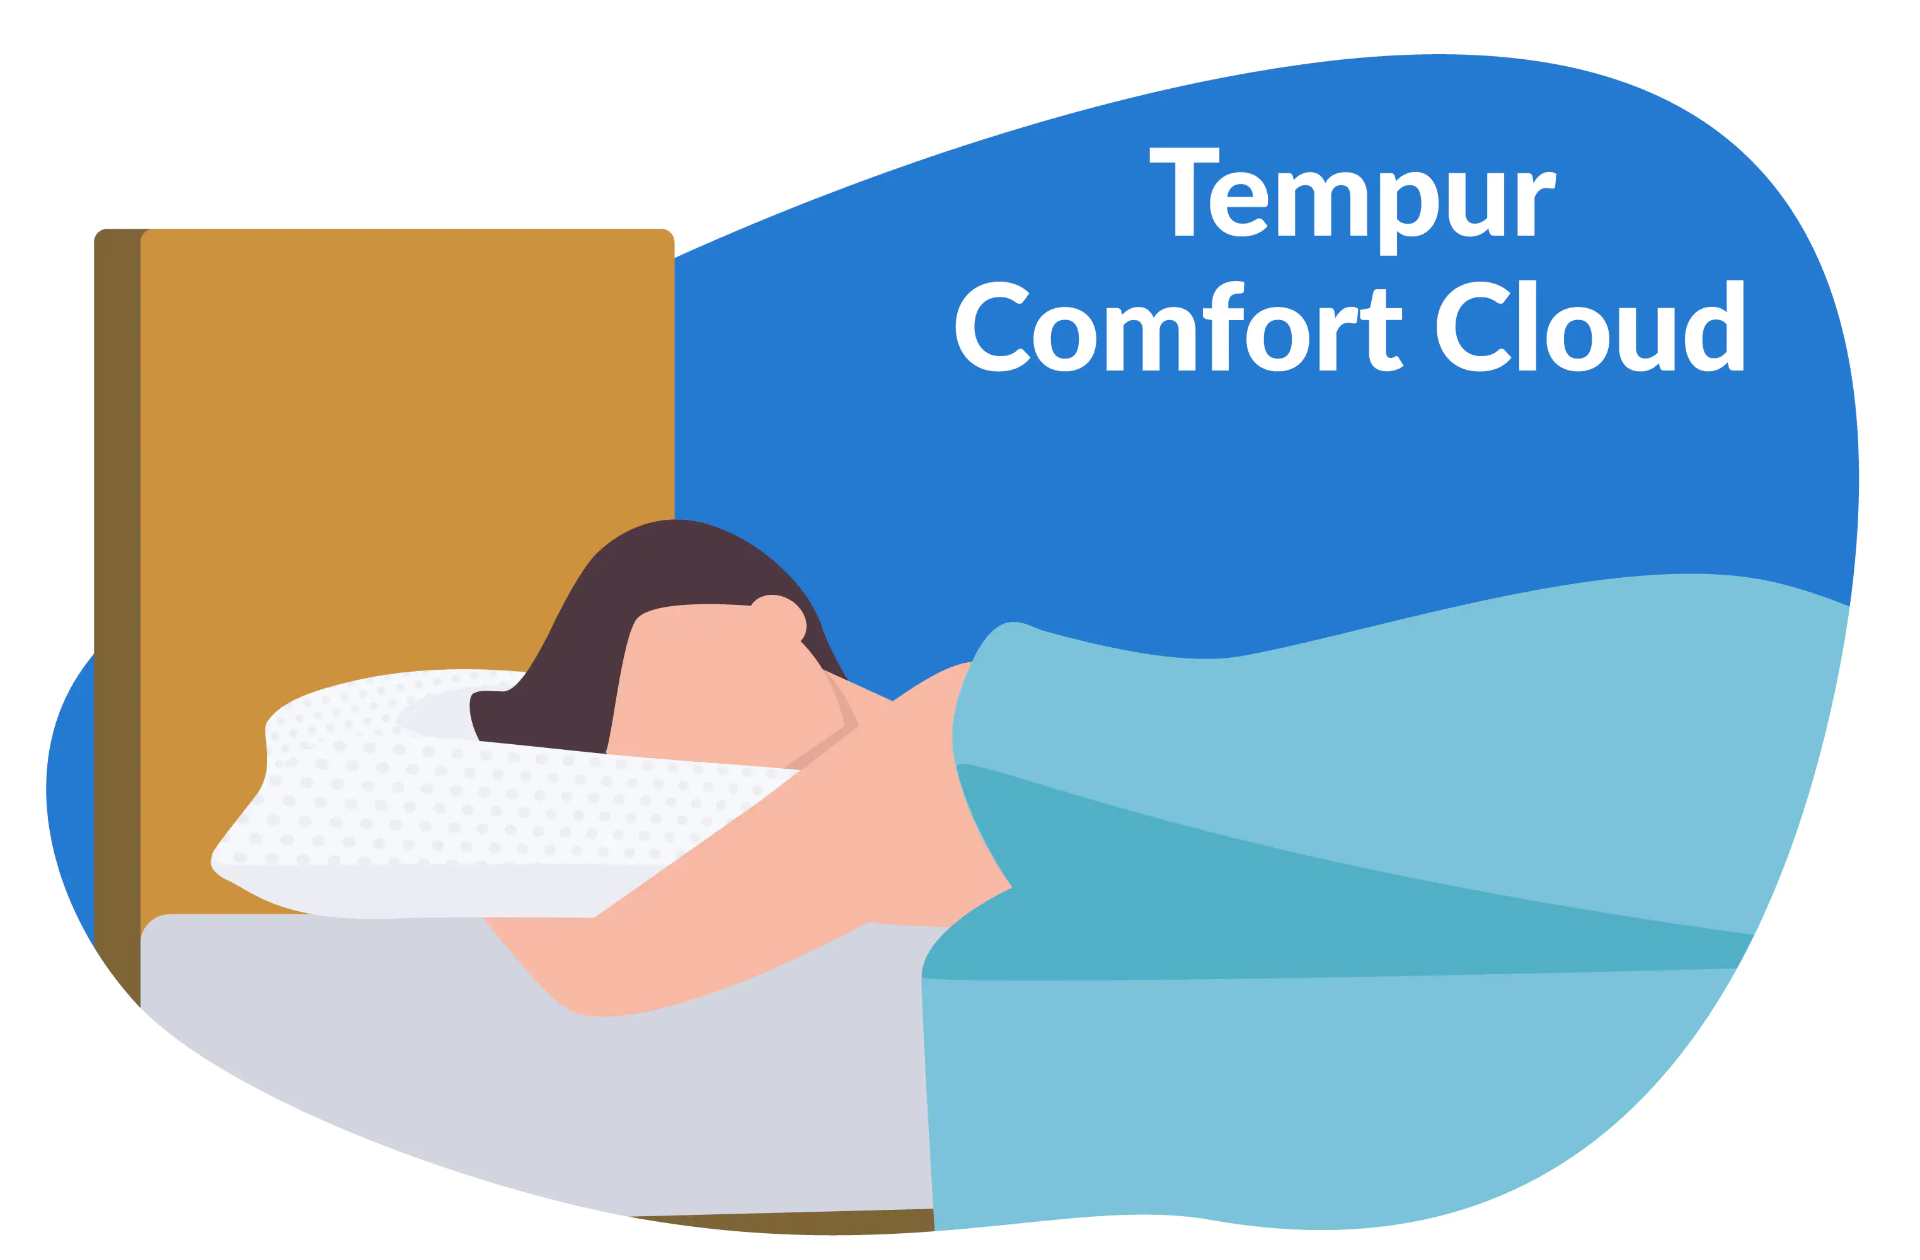 person laying on Tempur comfort cloud